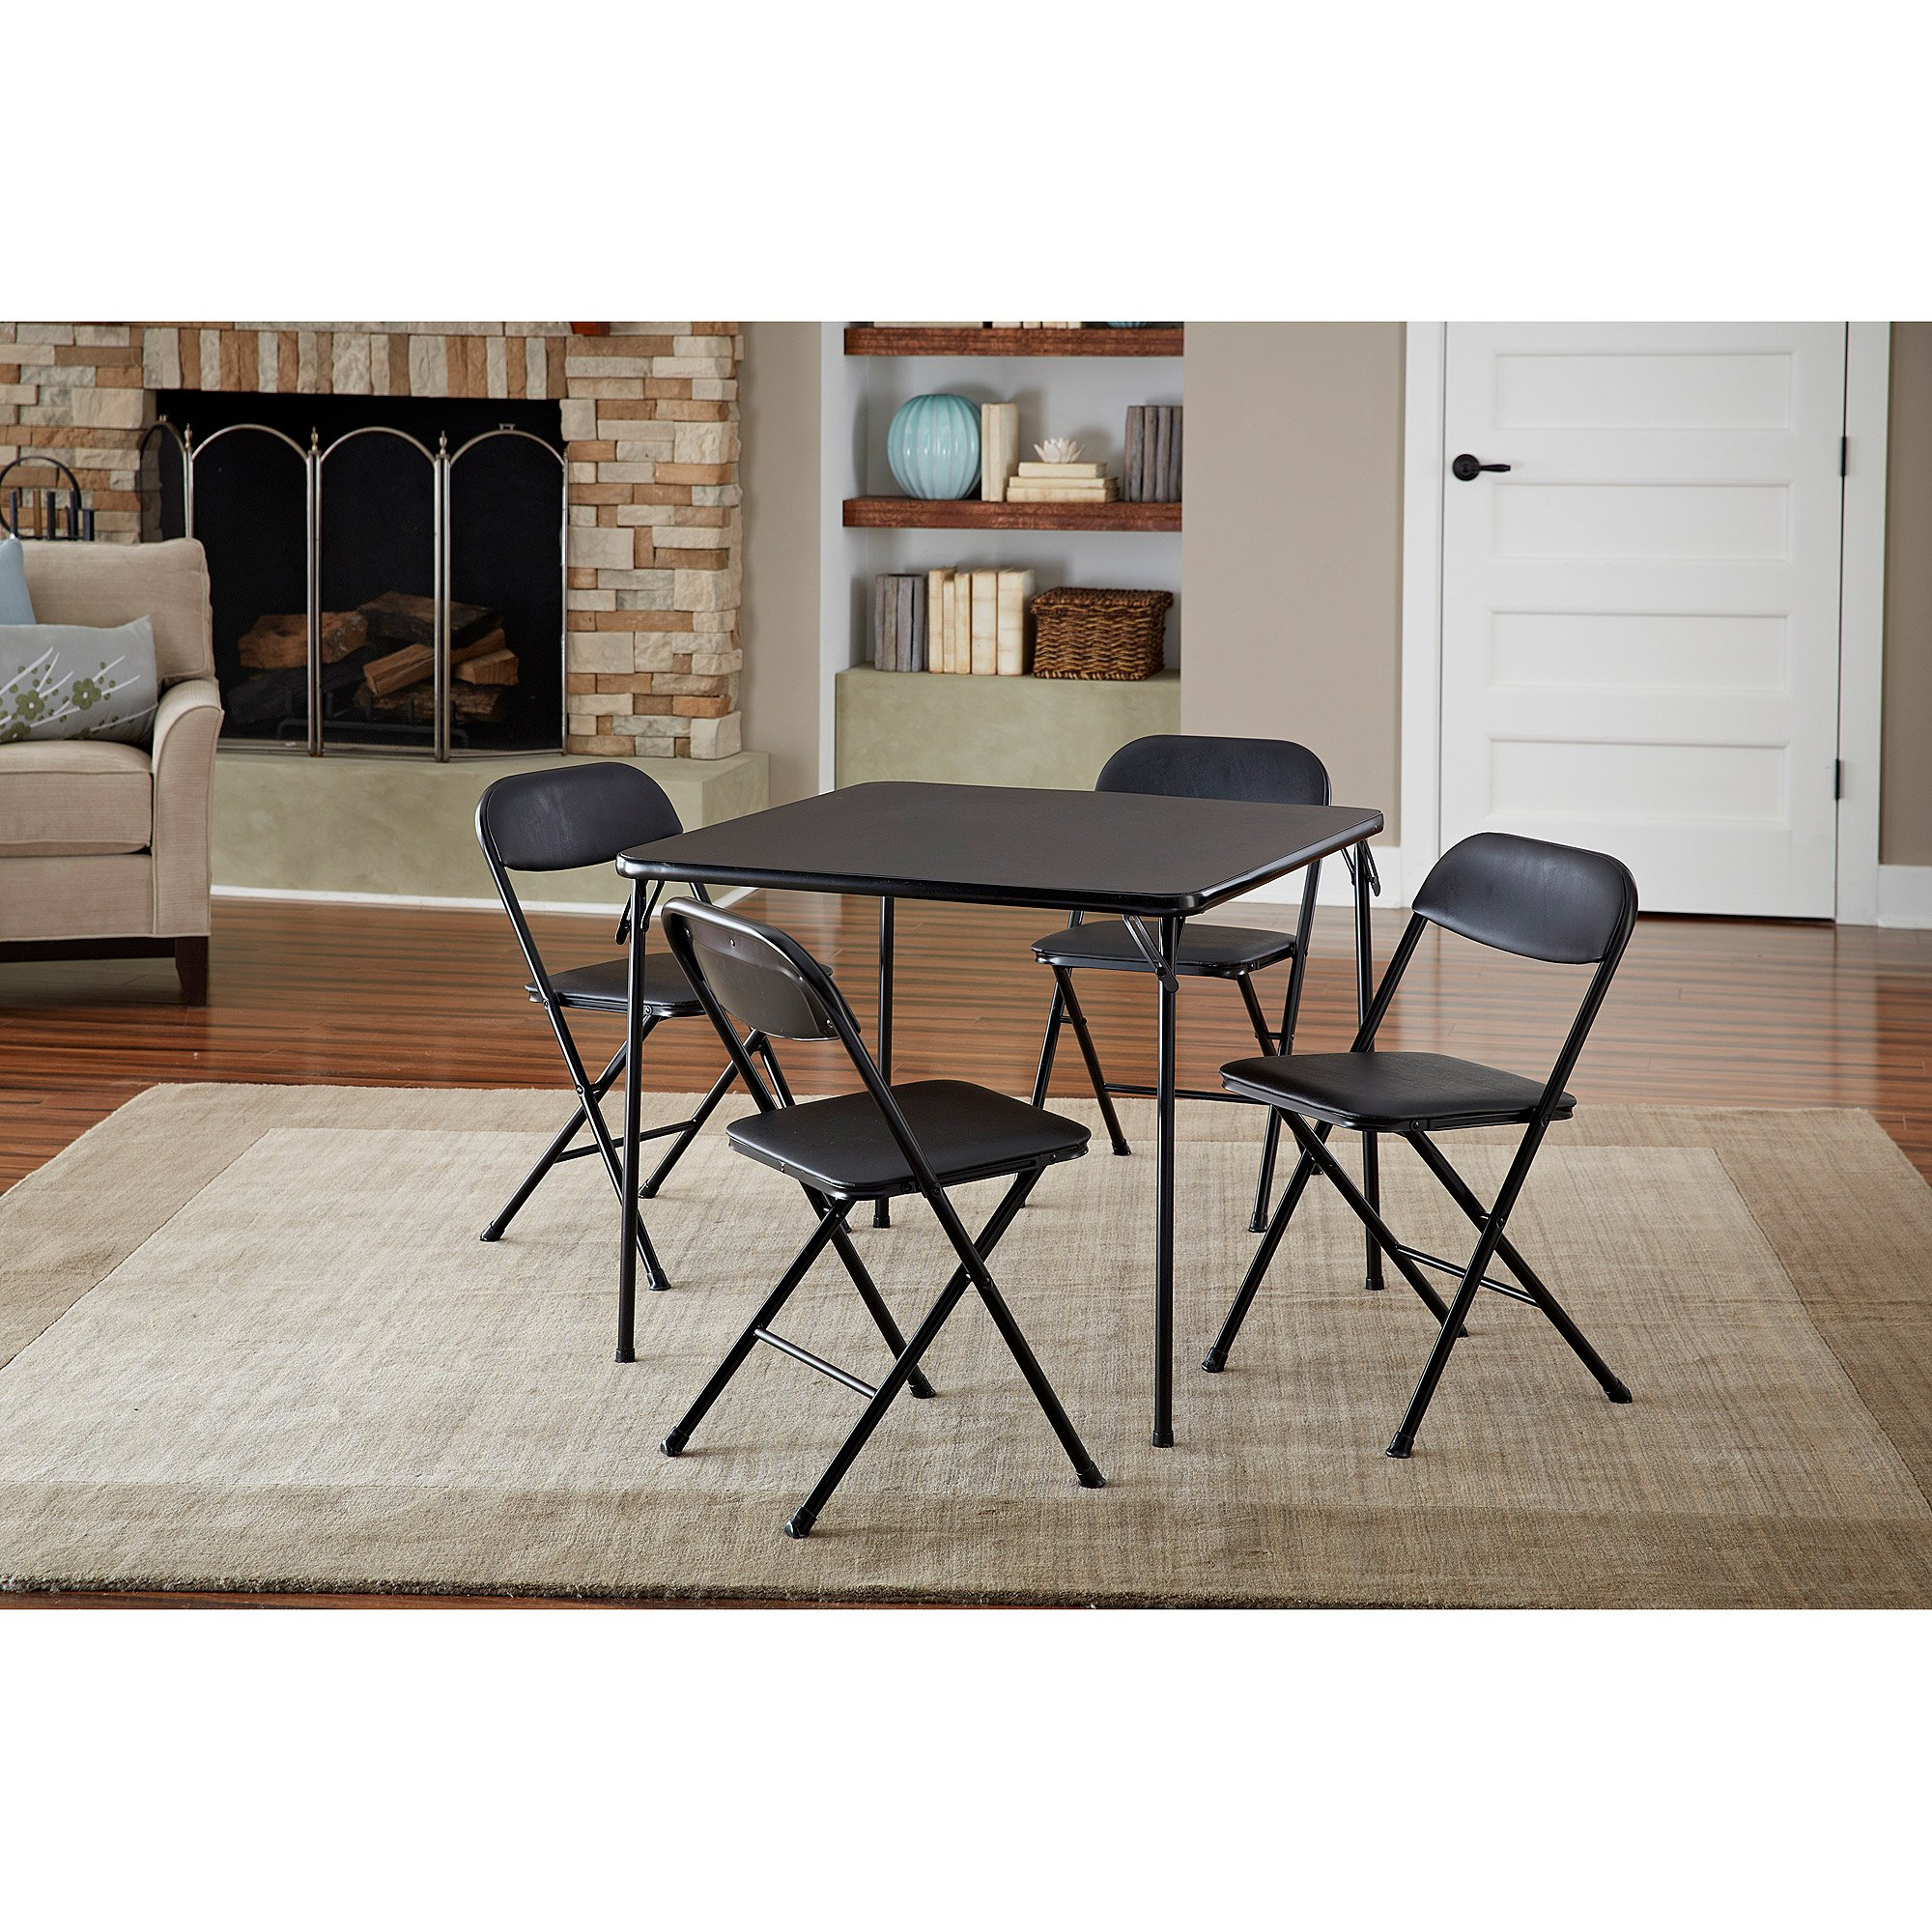 Luxury 5-Piece Card Table Set Low-Maintenance And Long-Lasting Powder-Coat Frame Finish, Black by Luxury